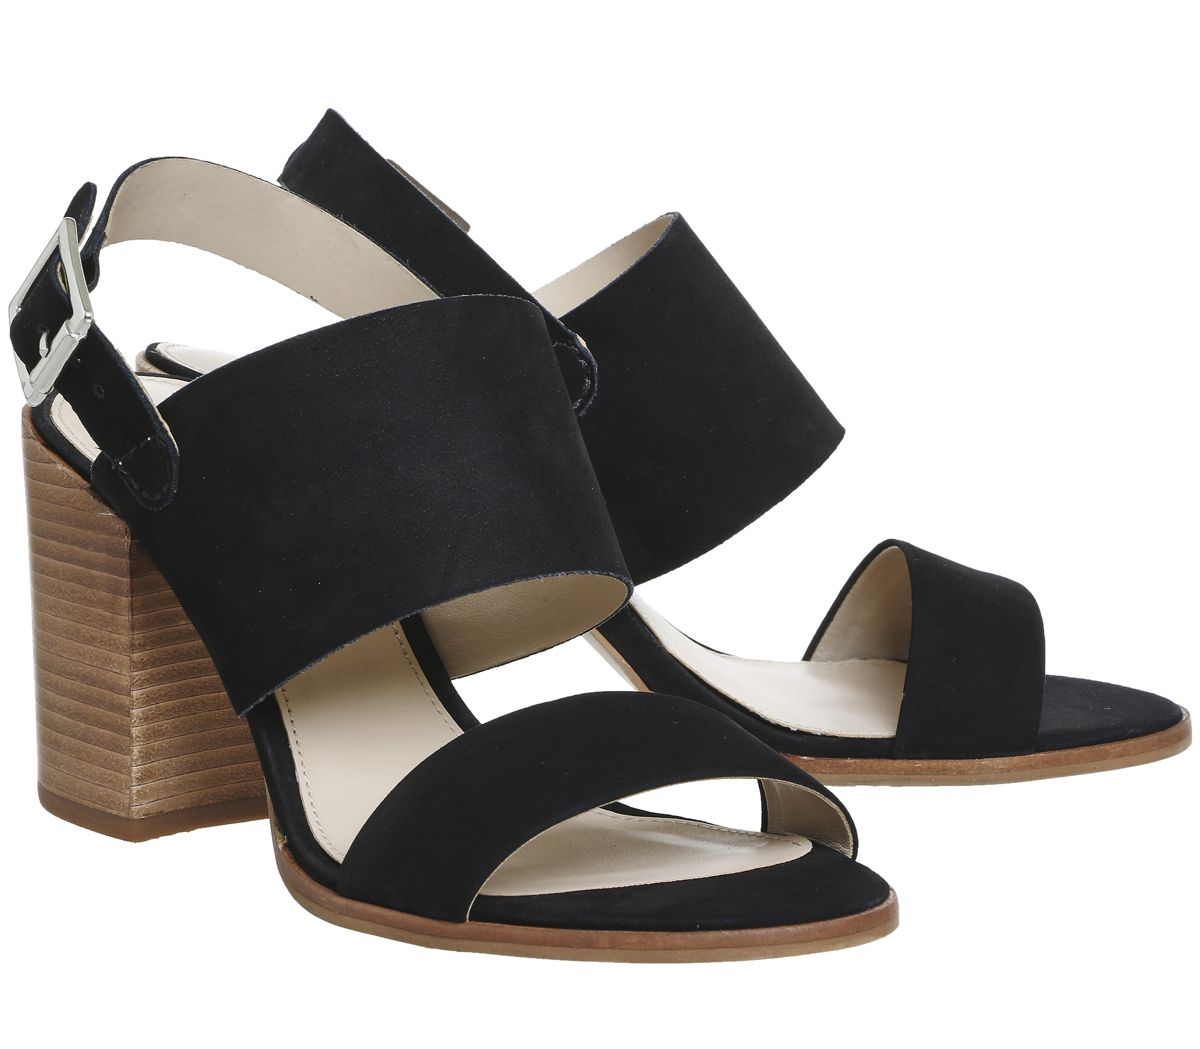 c9636b2a74d Maddox Two Part Block Heels. Double tap to zoom into the image. Office